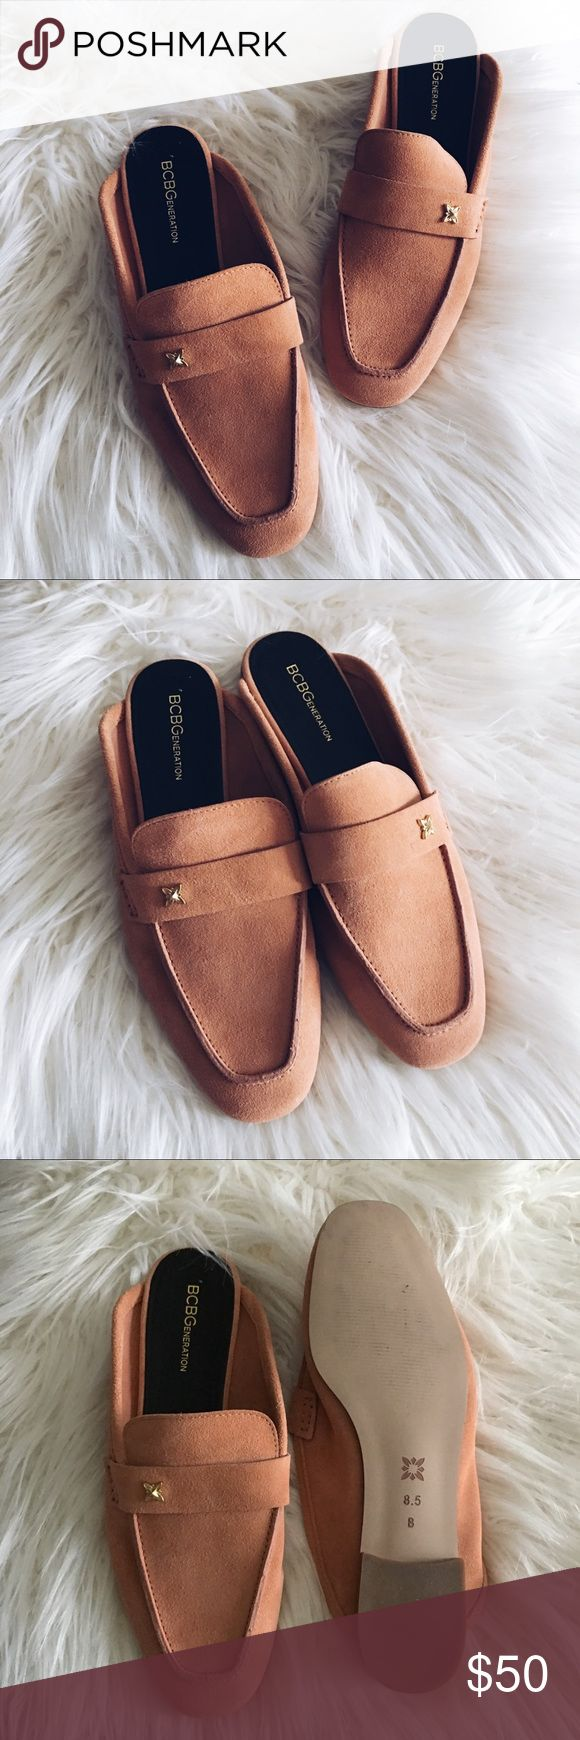 •BCBGeneration• Peach Mules Super cute and on trend! Leather vamp strap with crystal embellishment. Apron toe. Man-made lining and insole. Low stacked heel. Man-made sole. (PF4) BCBGeneration Shoes Mules & Clogs